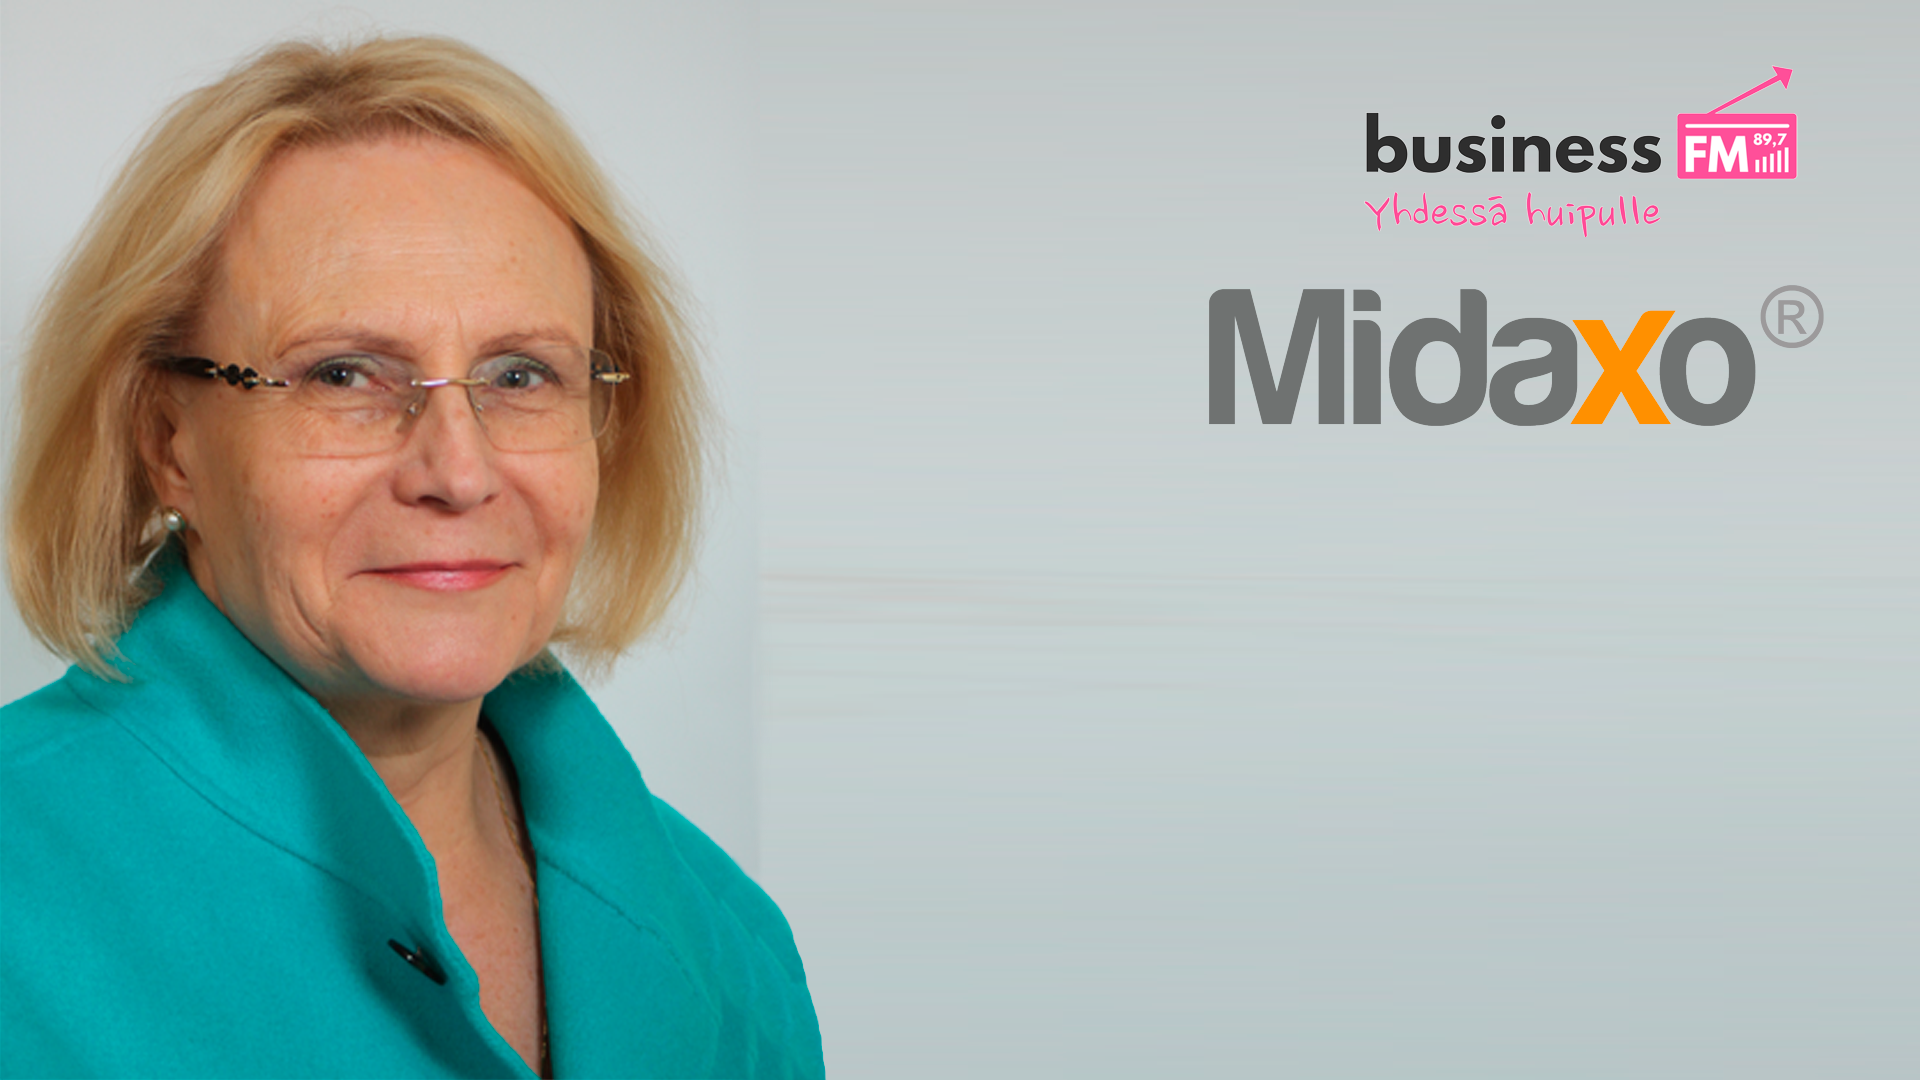 Midaxo's founder Kaija Katariina Erkkilä on Business FM